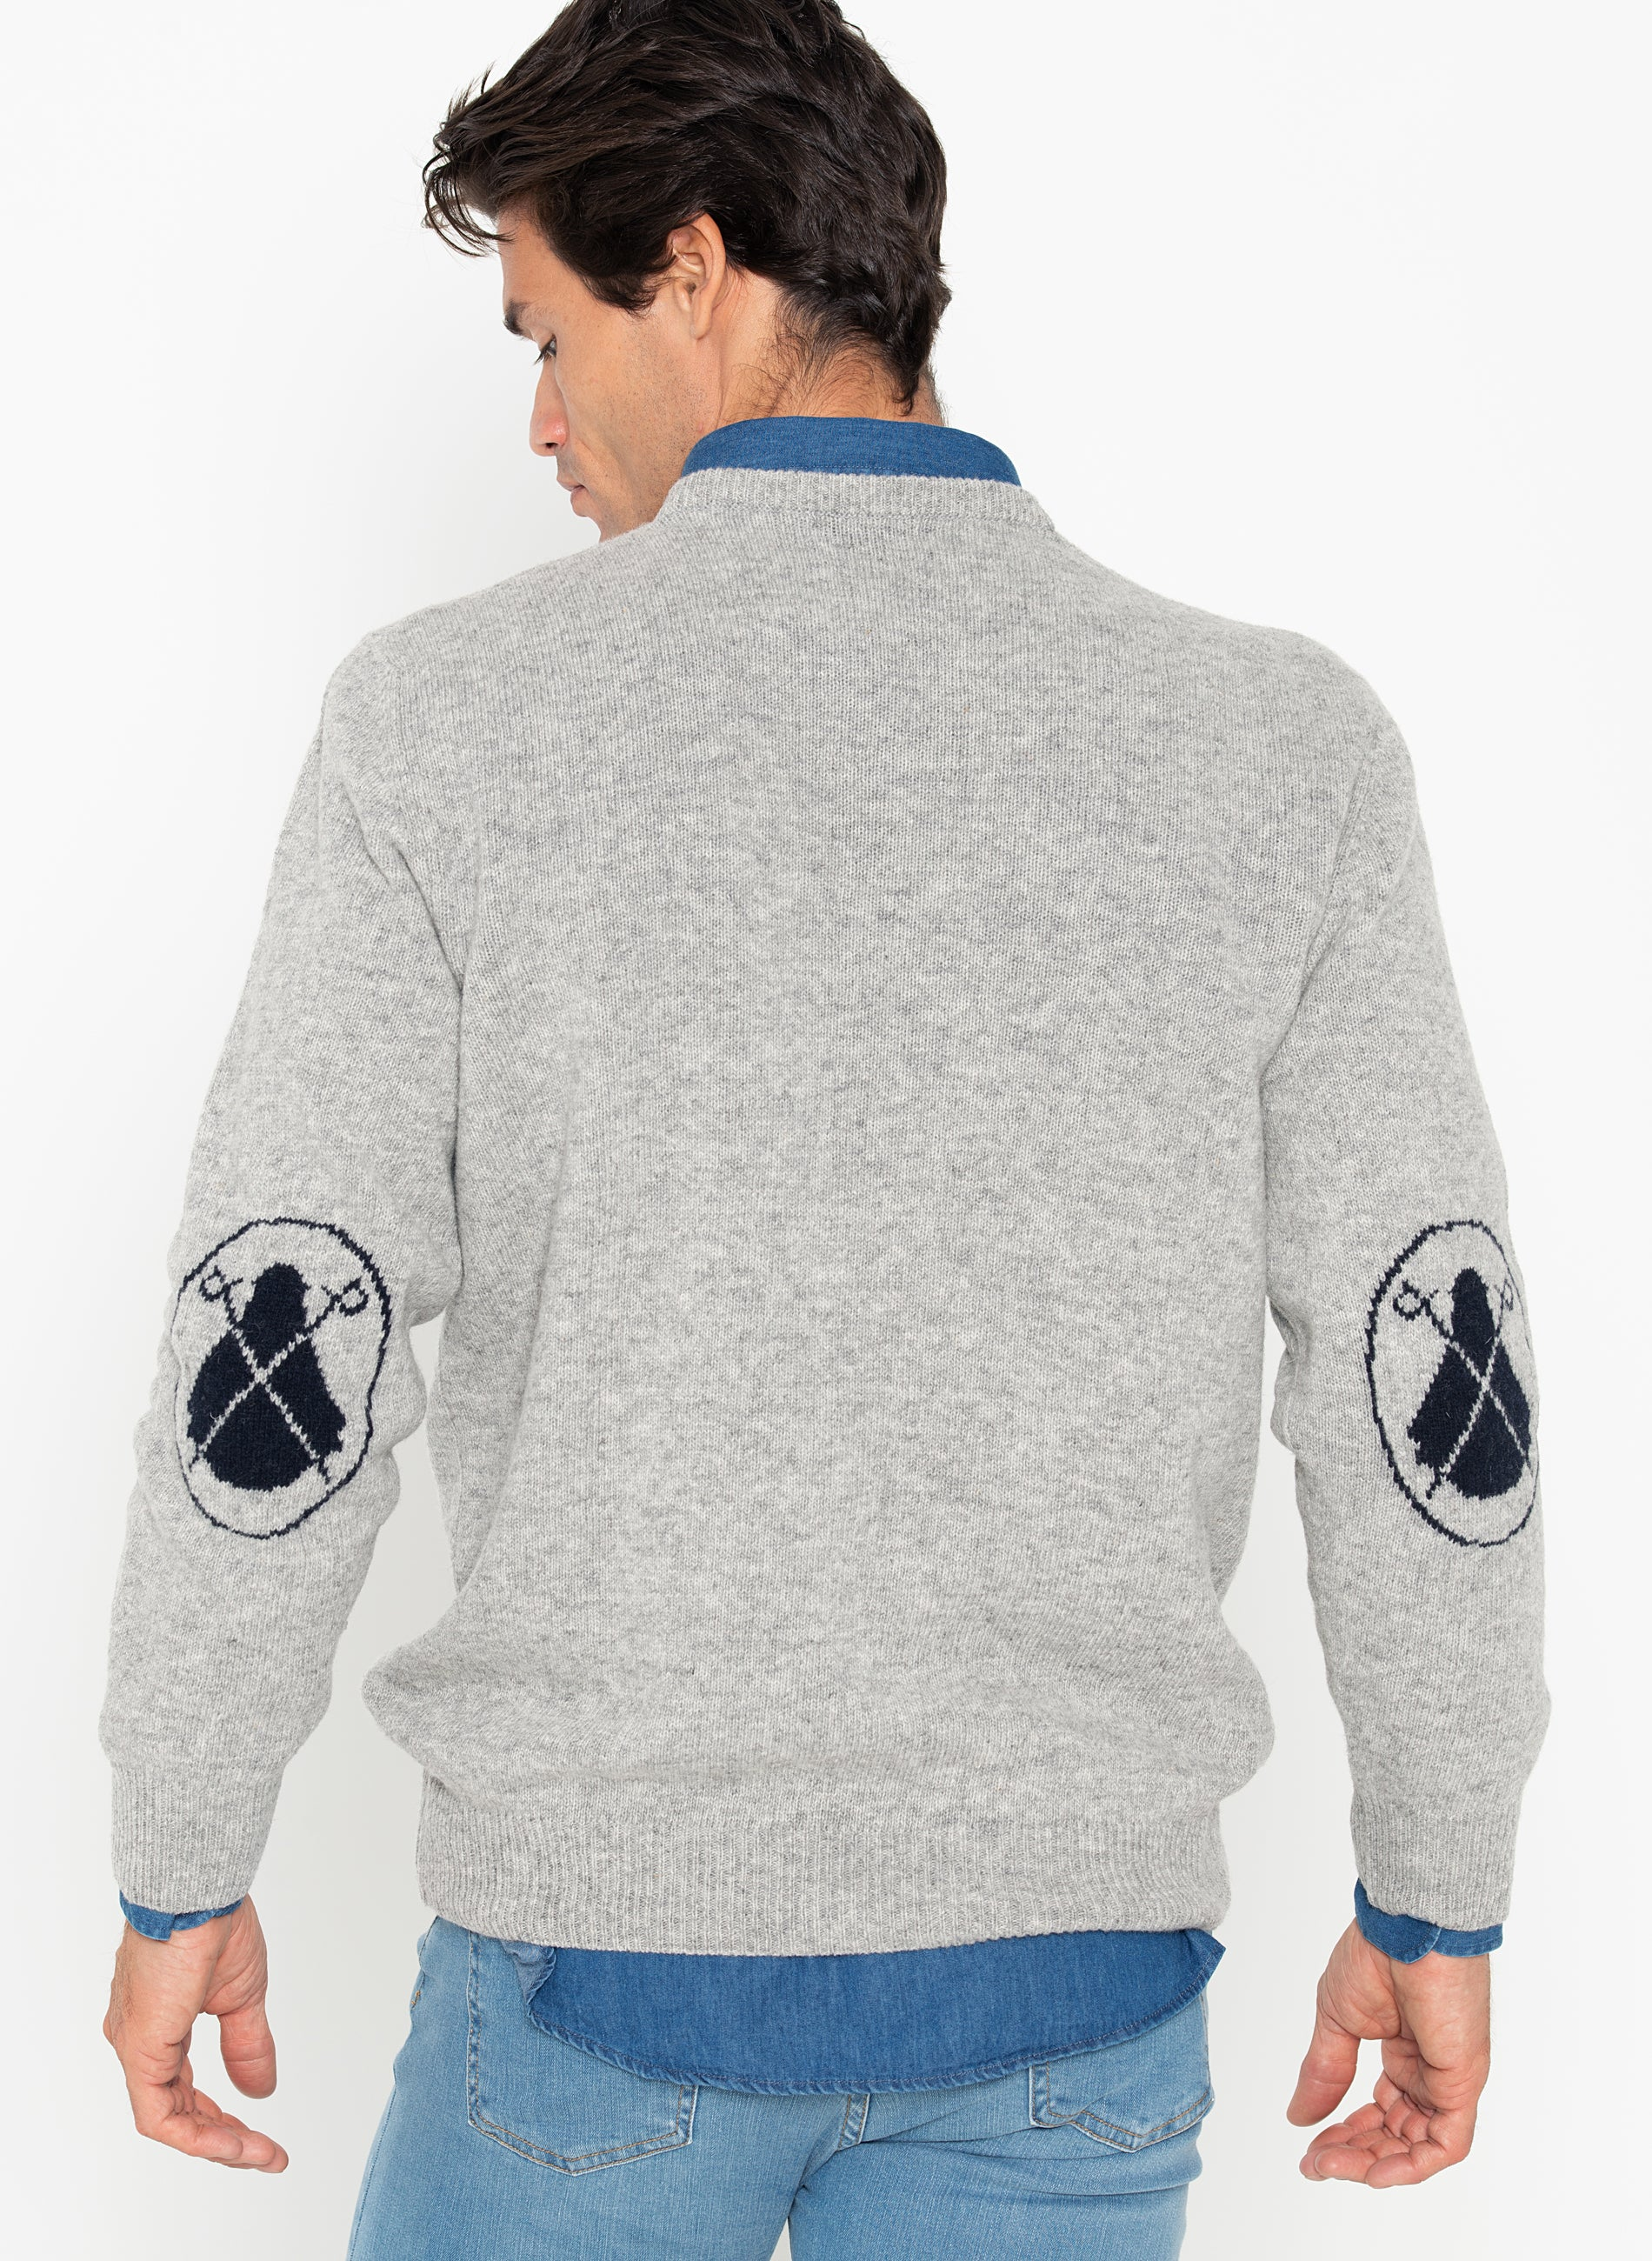 Jersey Man Gray Elbow Patches Blue Capes